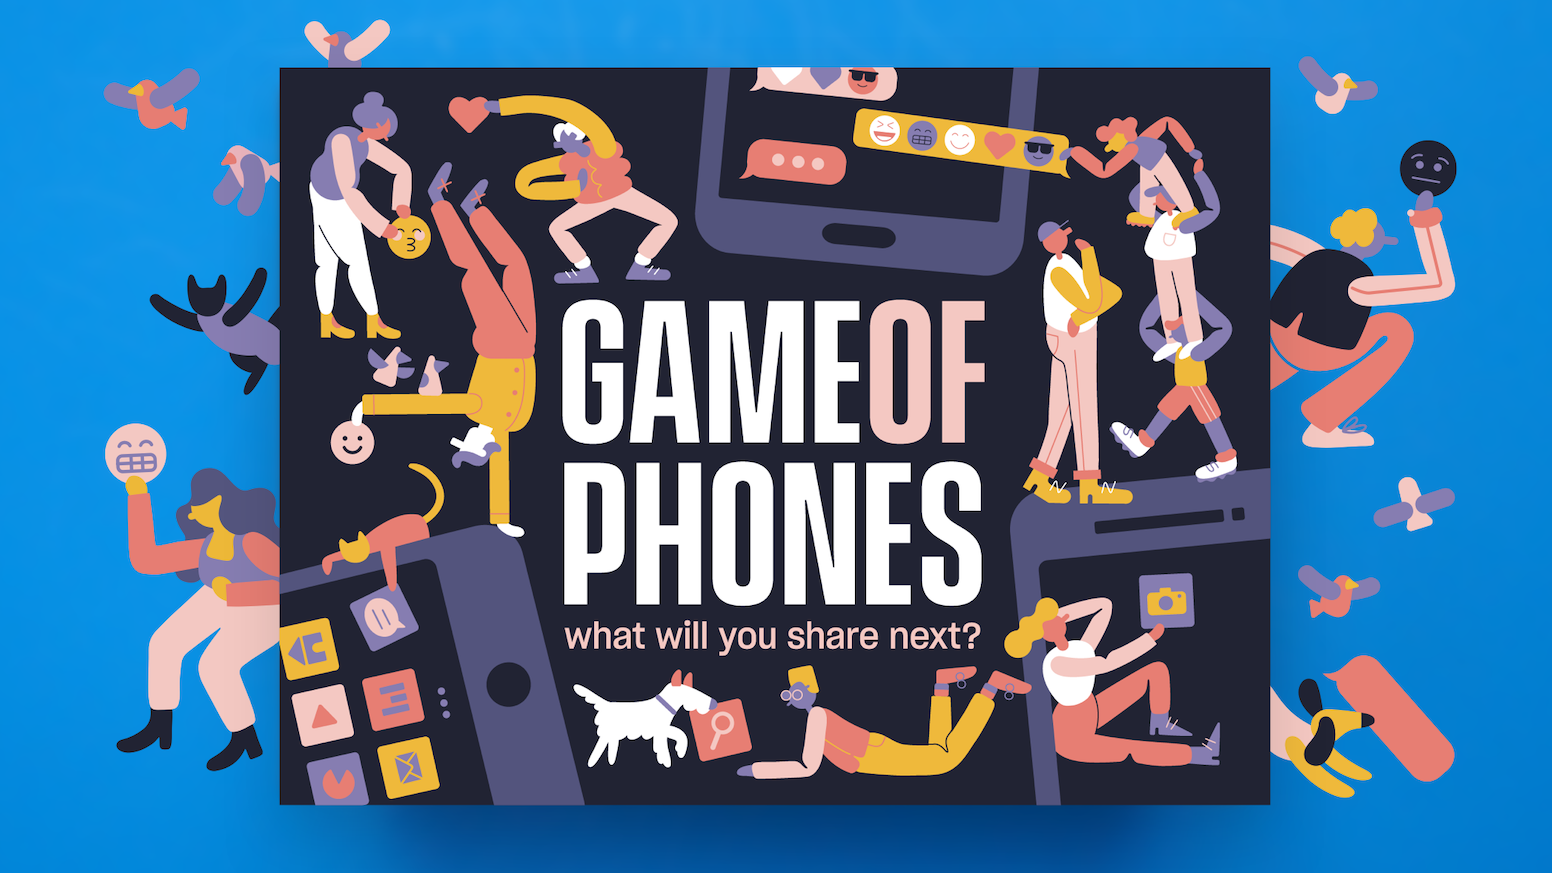 A card game where all you need is your smartphone to take on creative and unexpected challenges.